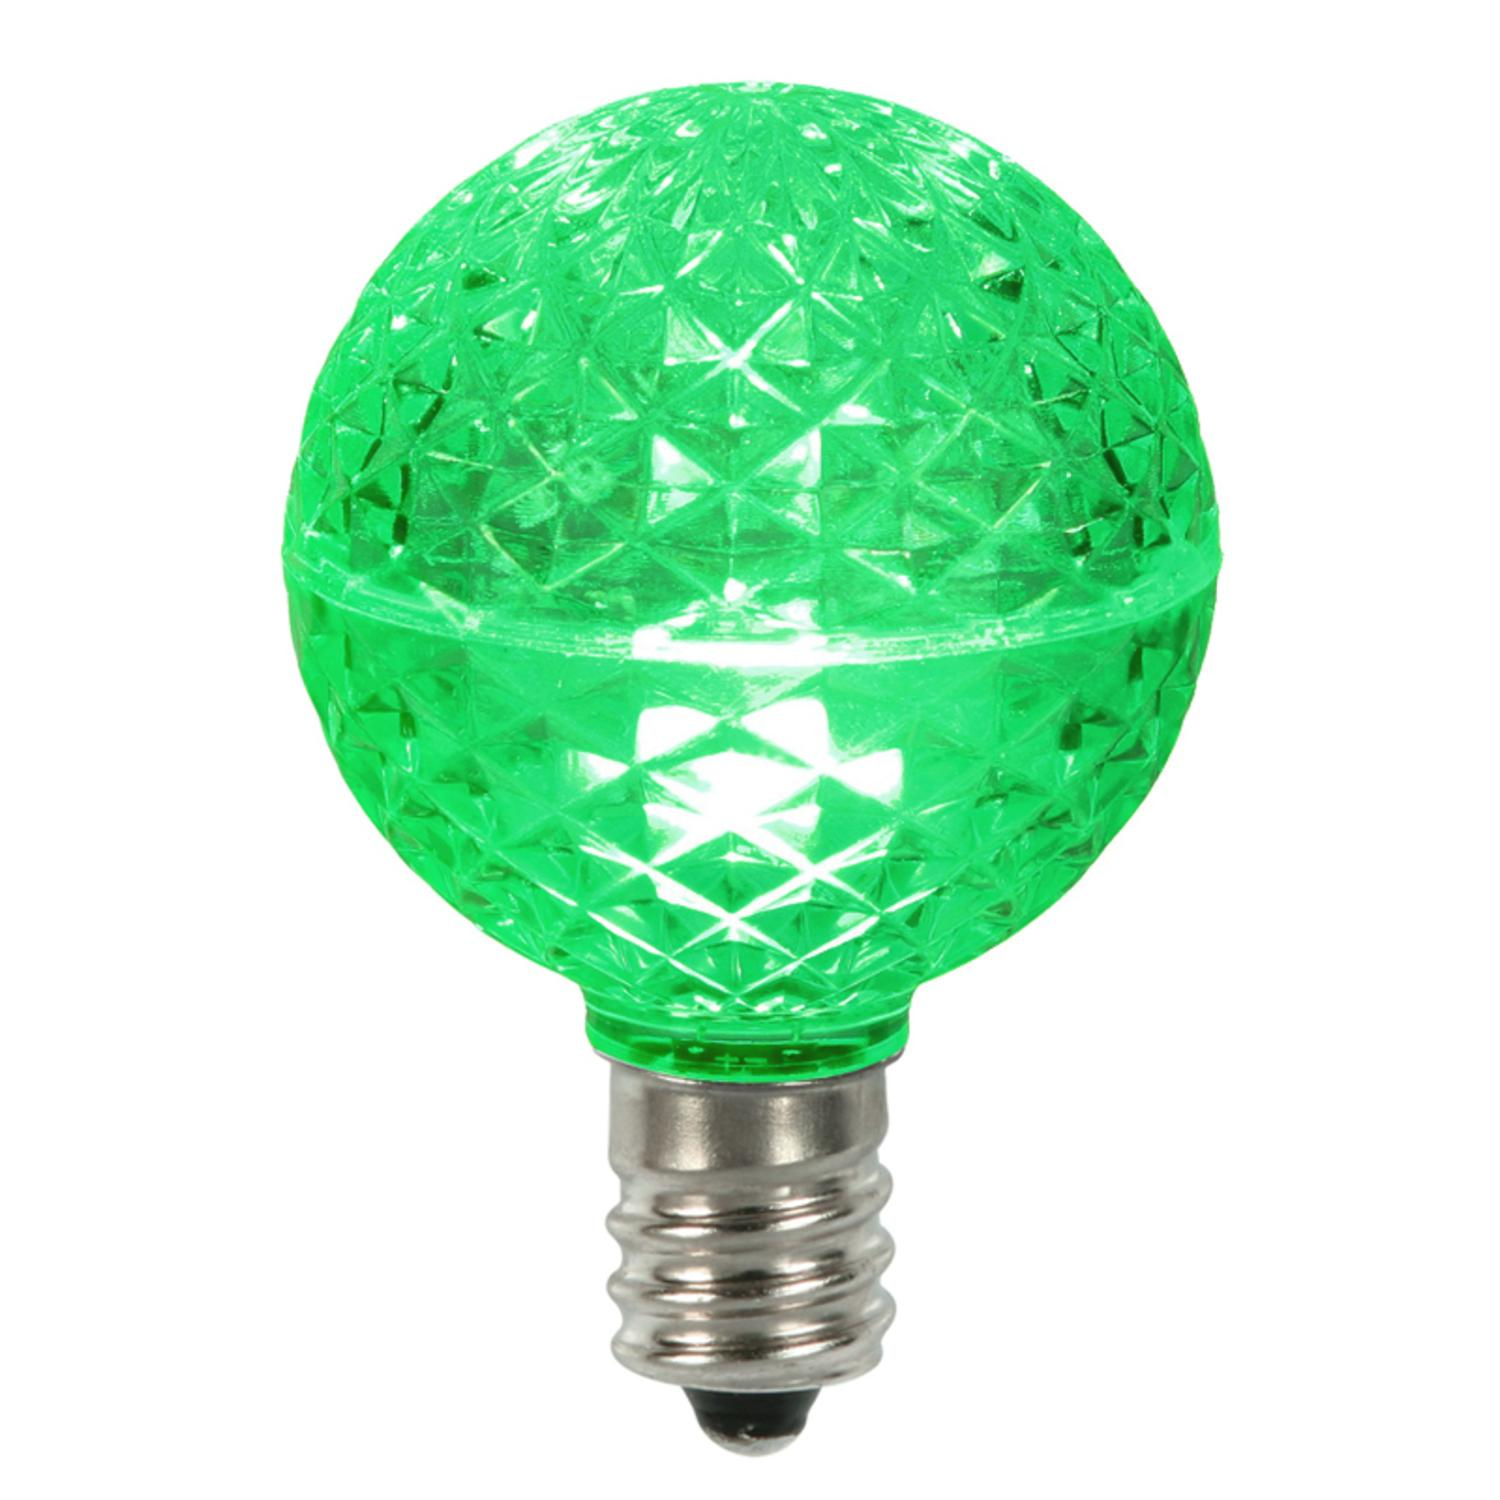 Club Pack of 25 LED G50 Green Replacement Christmas LIGHT BULBS - E12 Base